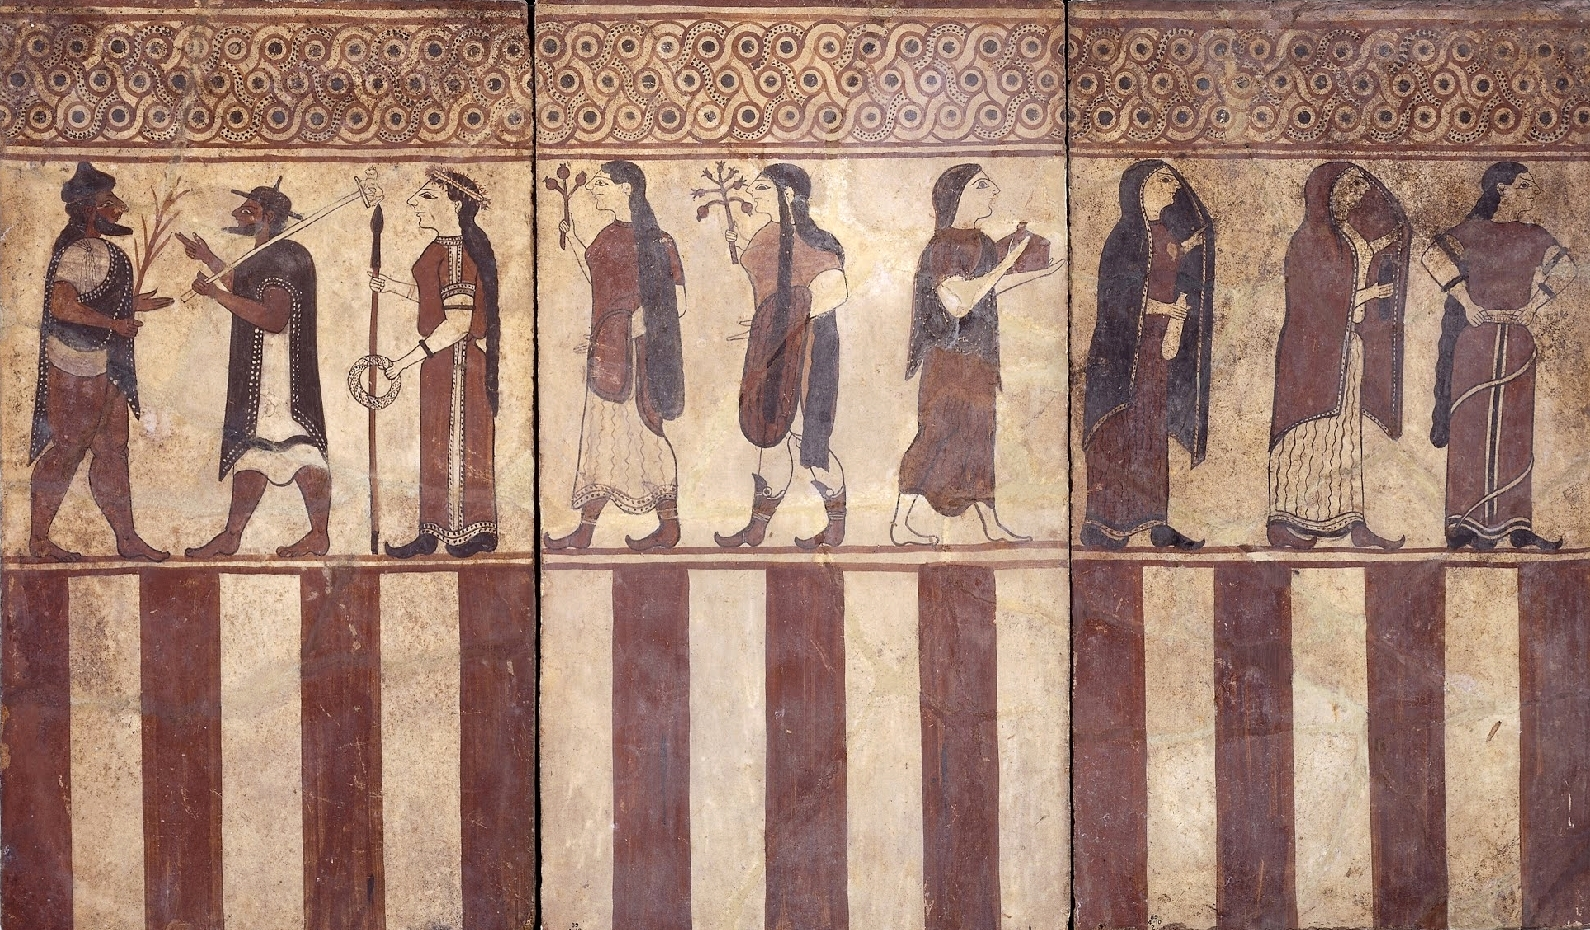 Etruscan tomb painting from the Necropolis of Cerveteri